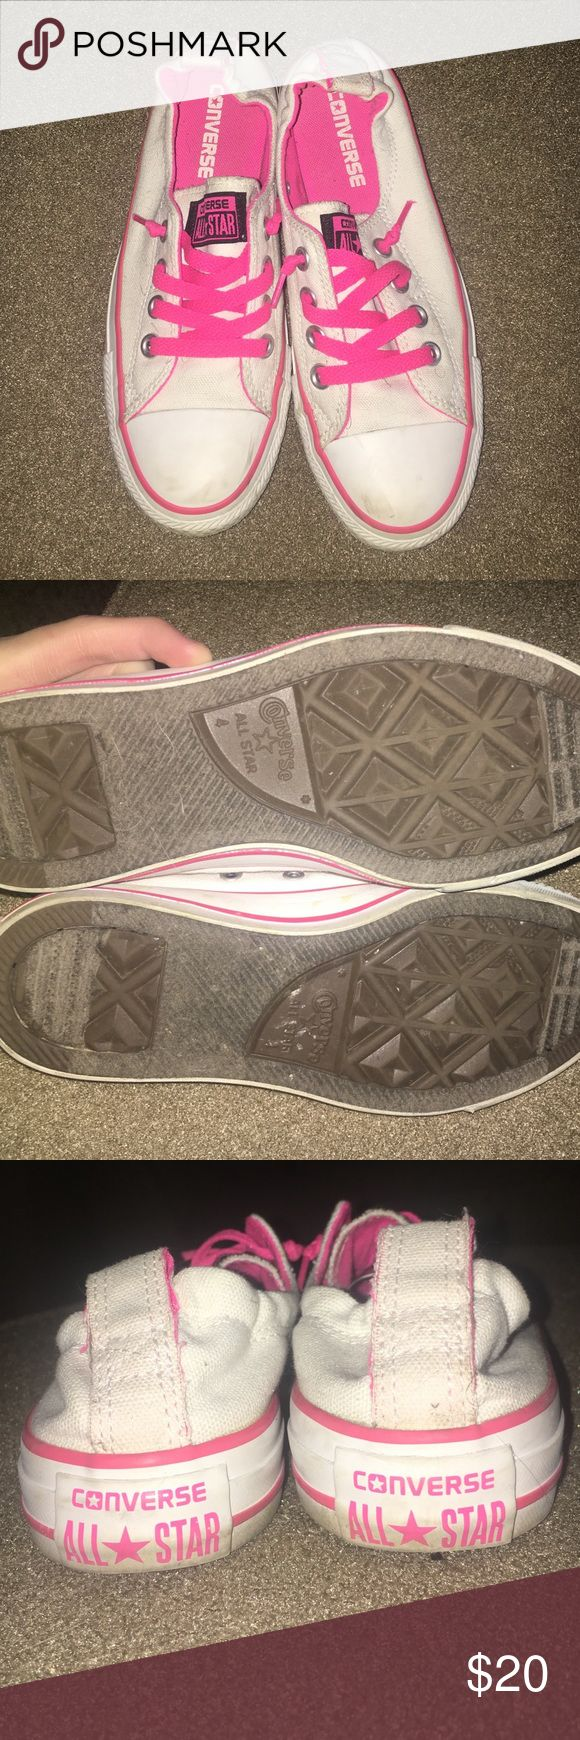 Converse Slip Ons White And Pink Converse slip on shoes. Very comfy. like new condition and will be cleaned before shipment. Size 4 Converse Shoes